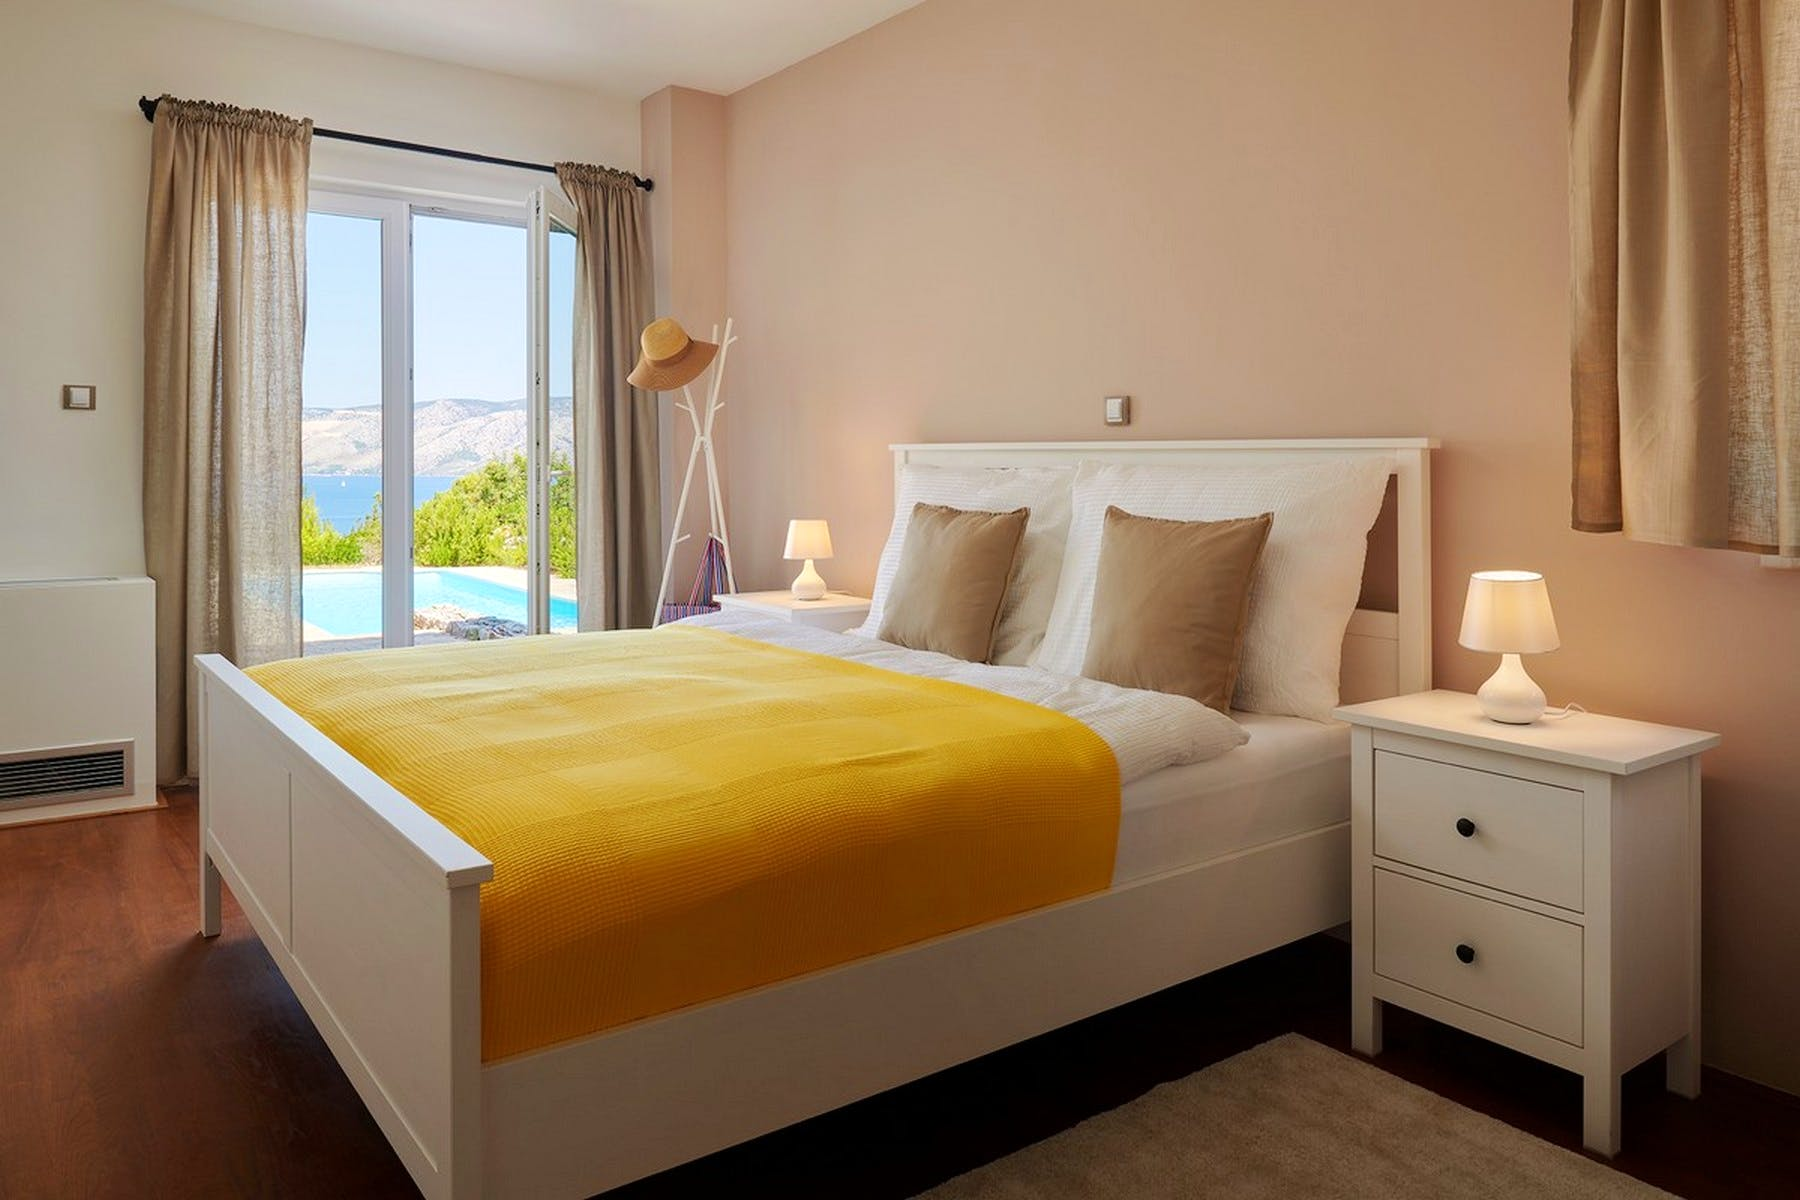 Double bedroom with a view of the pool